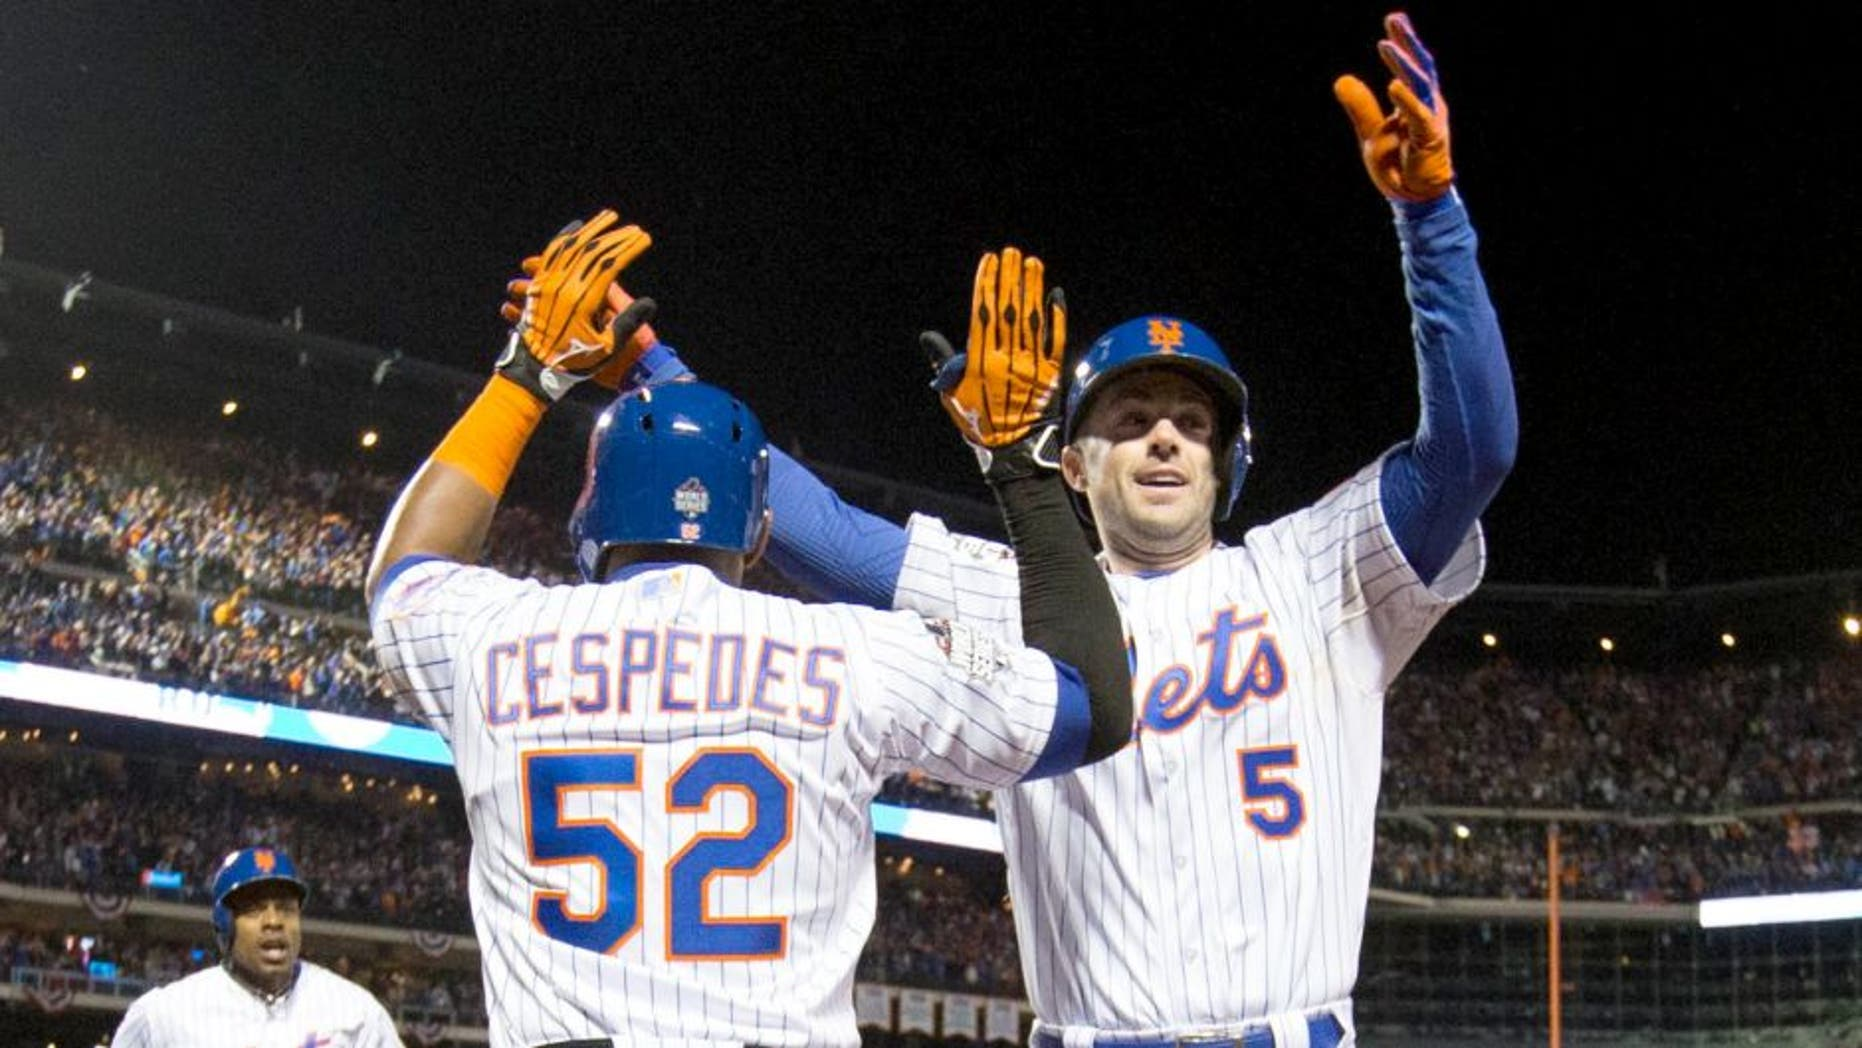 NEW YORK, NY - OCTOBER 30: David Wright #5 of the New York Mets is greeted by teammate Yoenis Cespedes after hitting a two-run home run in the bottom of the first inning of Game 3 of the 2015 World Series against the Kansas City Royals at Citi Field on Friday, October 30, 2015 in the Queens borough of New York City. (Photo by Rob Tringali/MLB Photos via Getty Images)